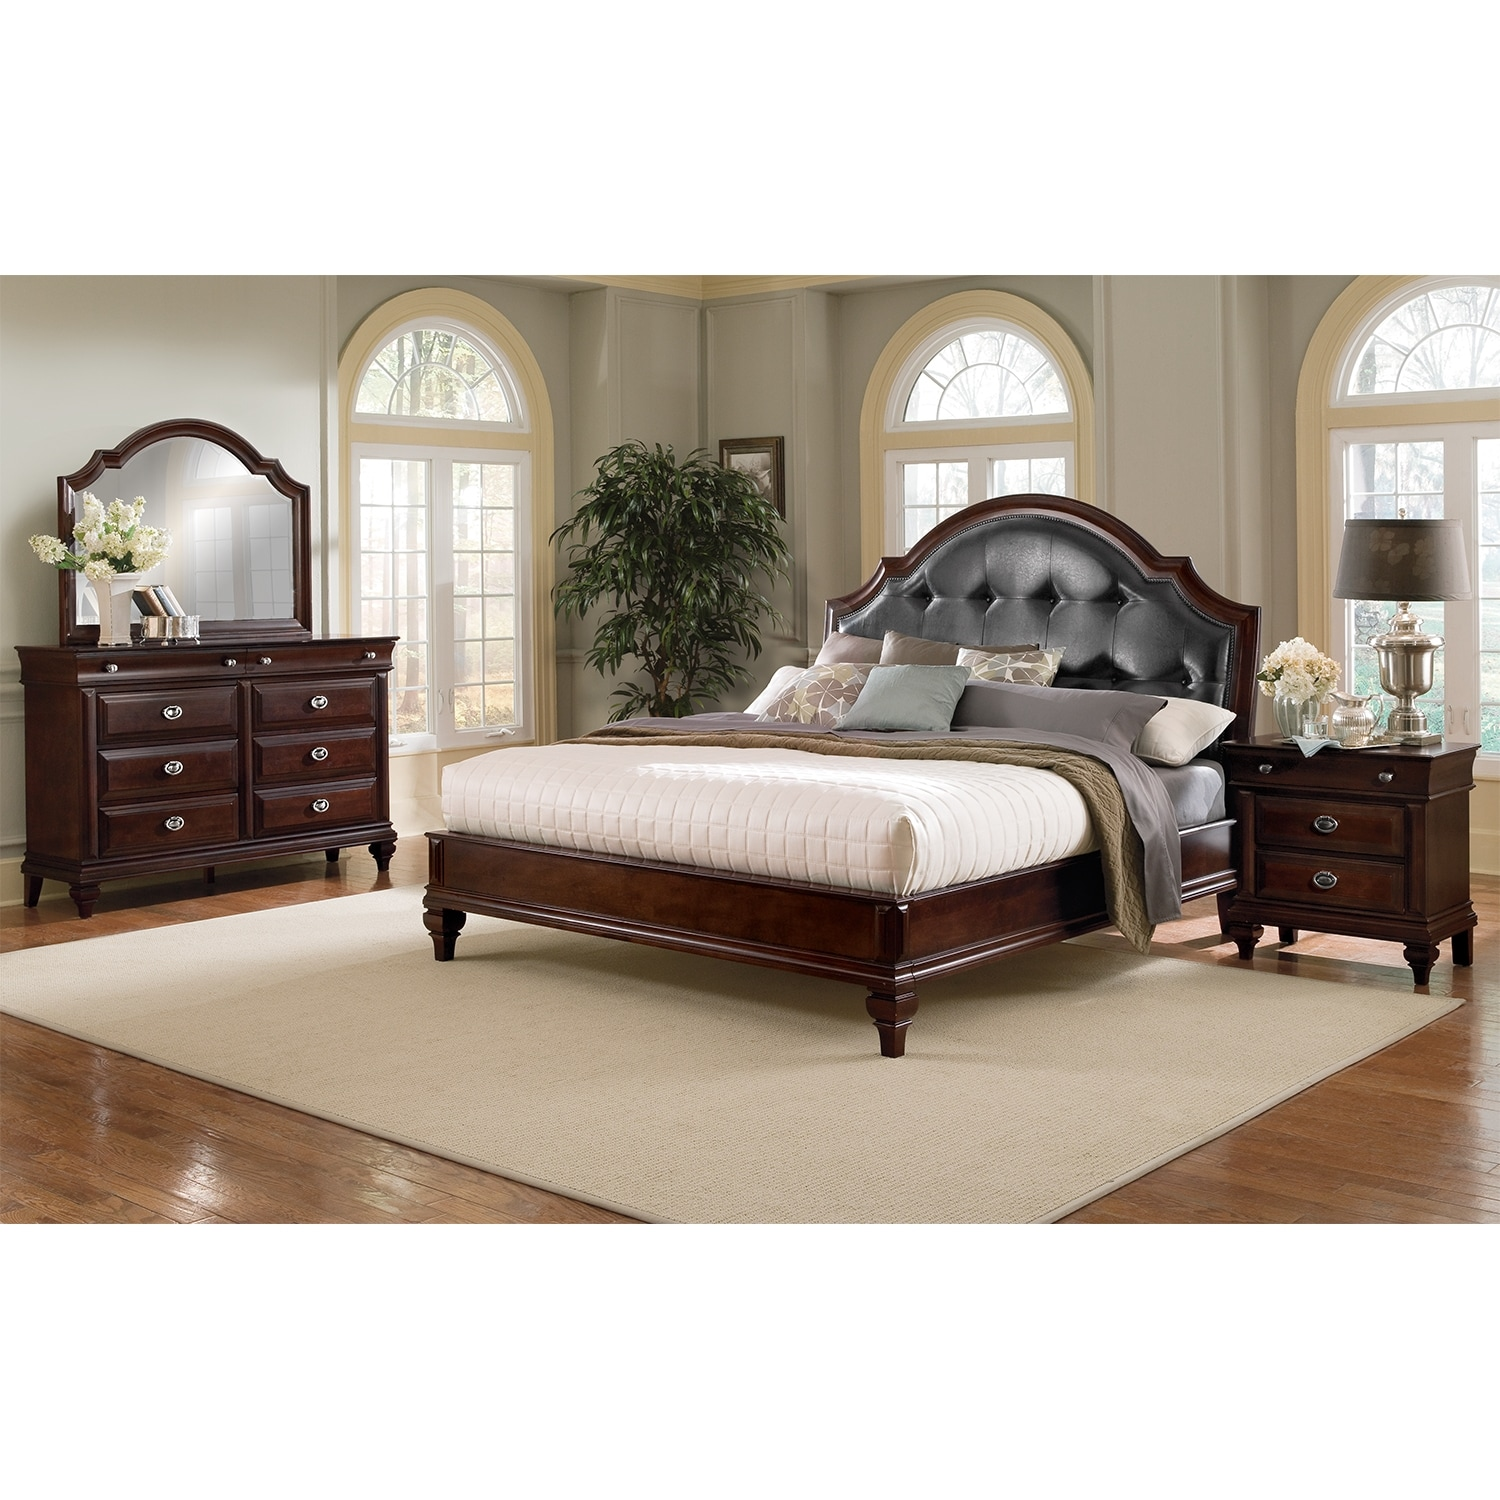 Beautiful Manhattan 6 Piece King Upholstered Bedroom Set   Cherry